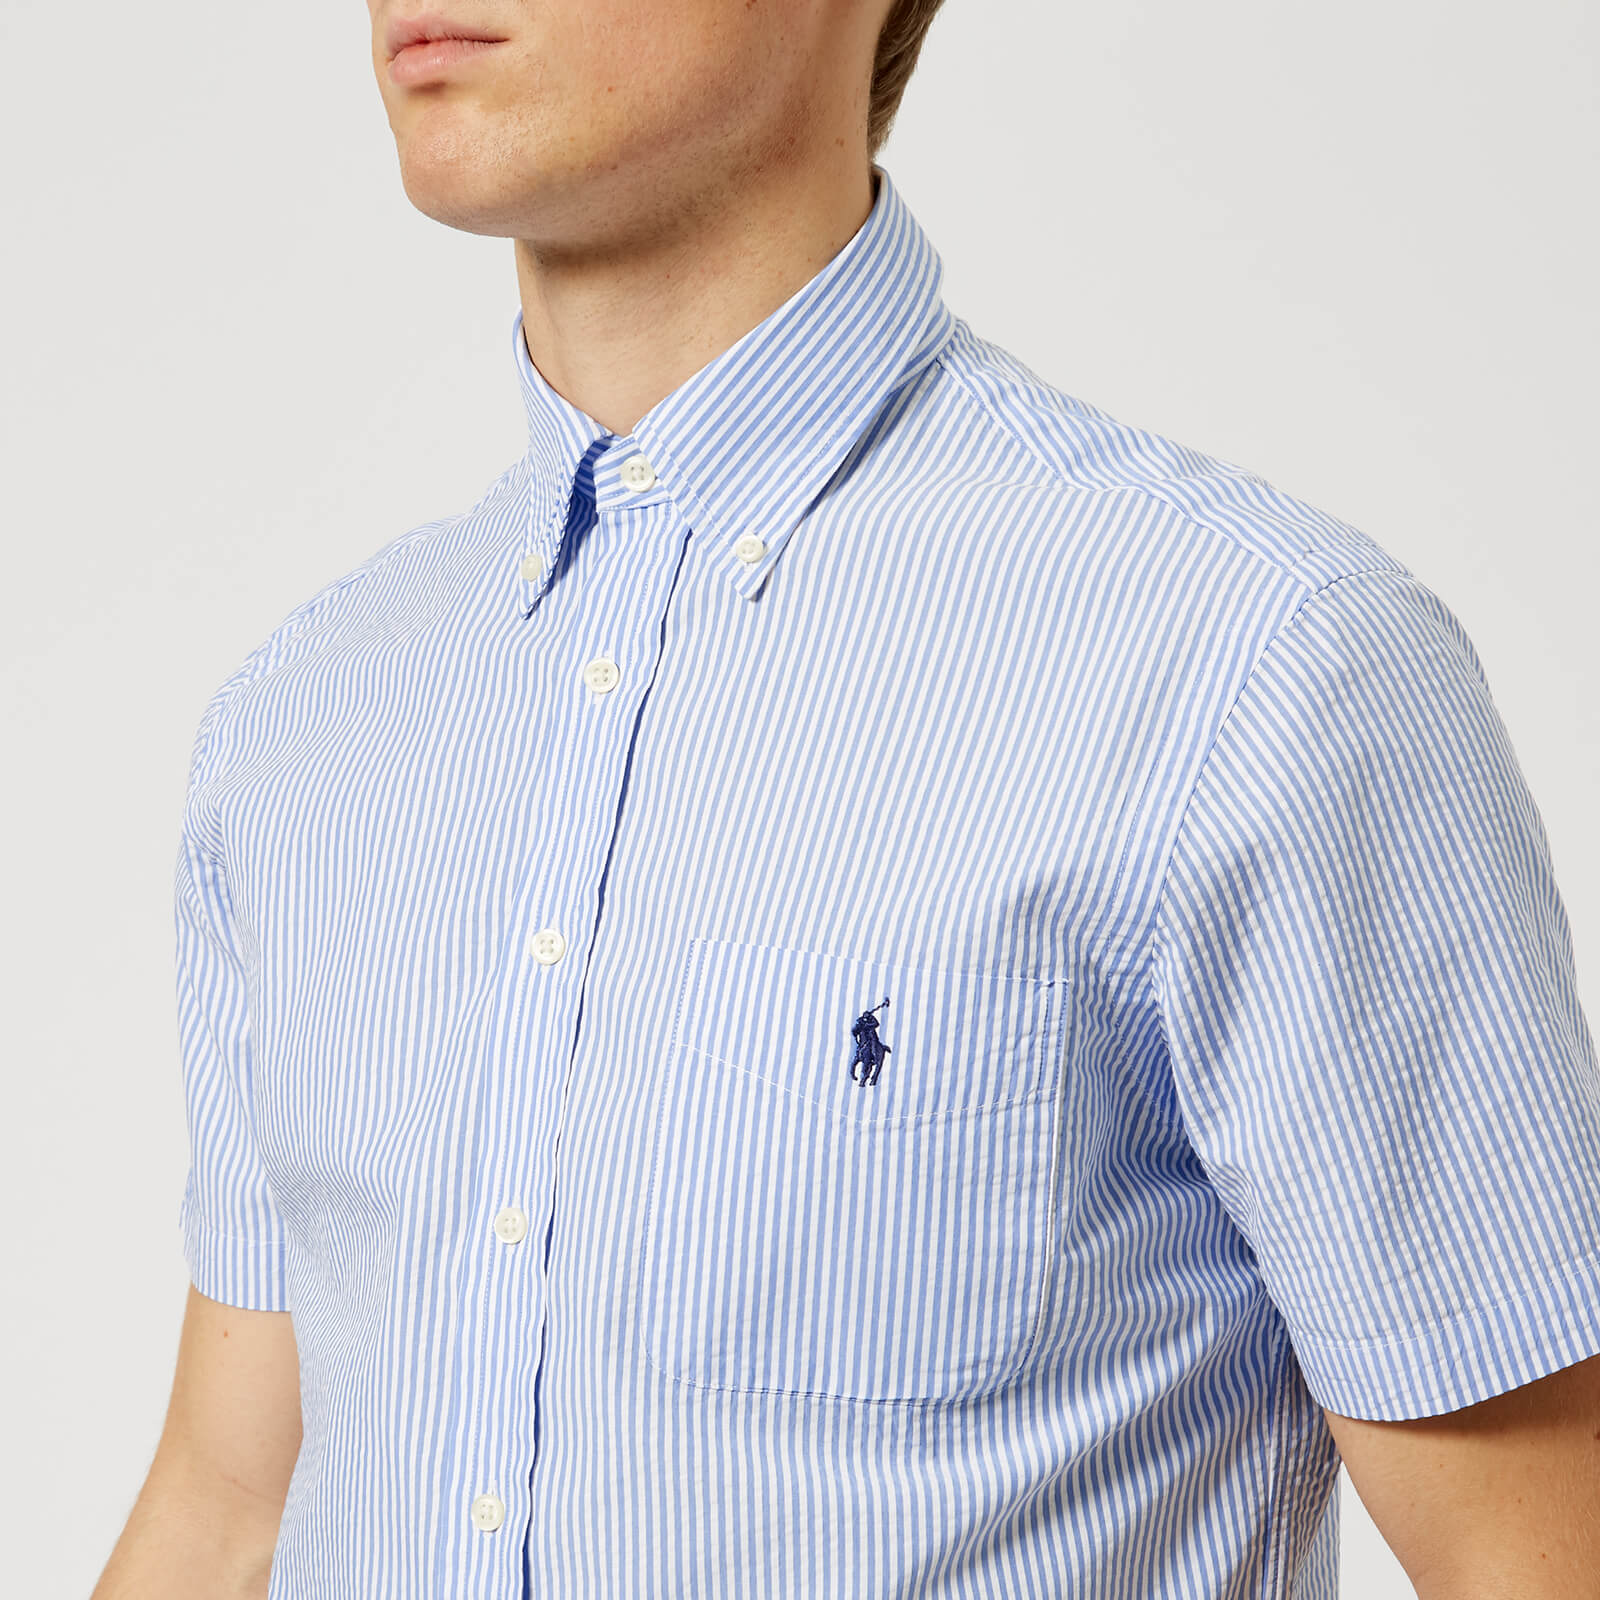 7e49f7c80 Polo Ralph Lauren Men's Short Sleeve Seersucker Shirt - Blue - Free UK  Delivery over £50